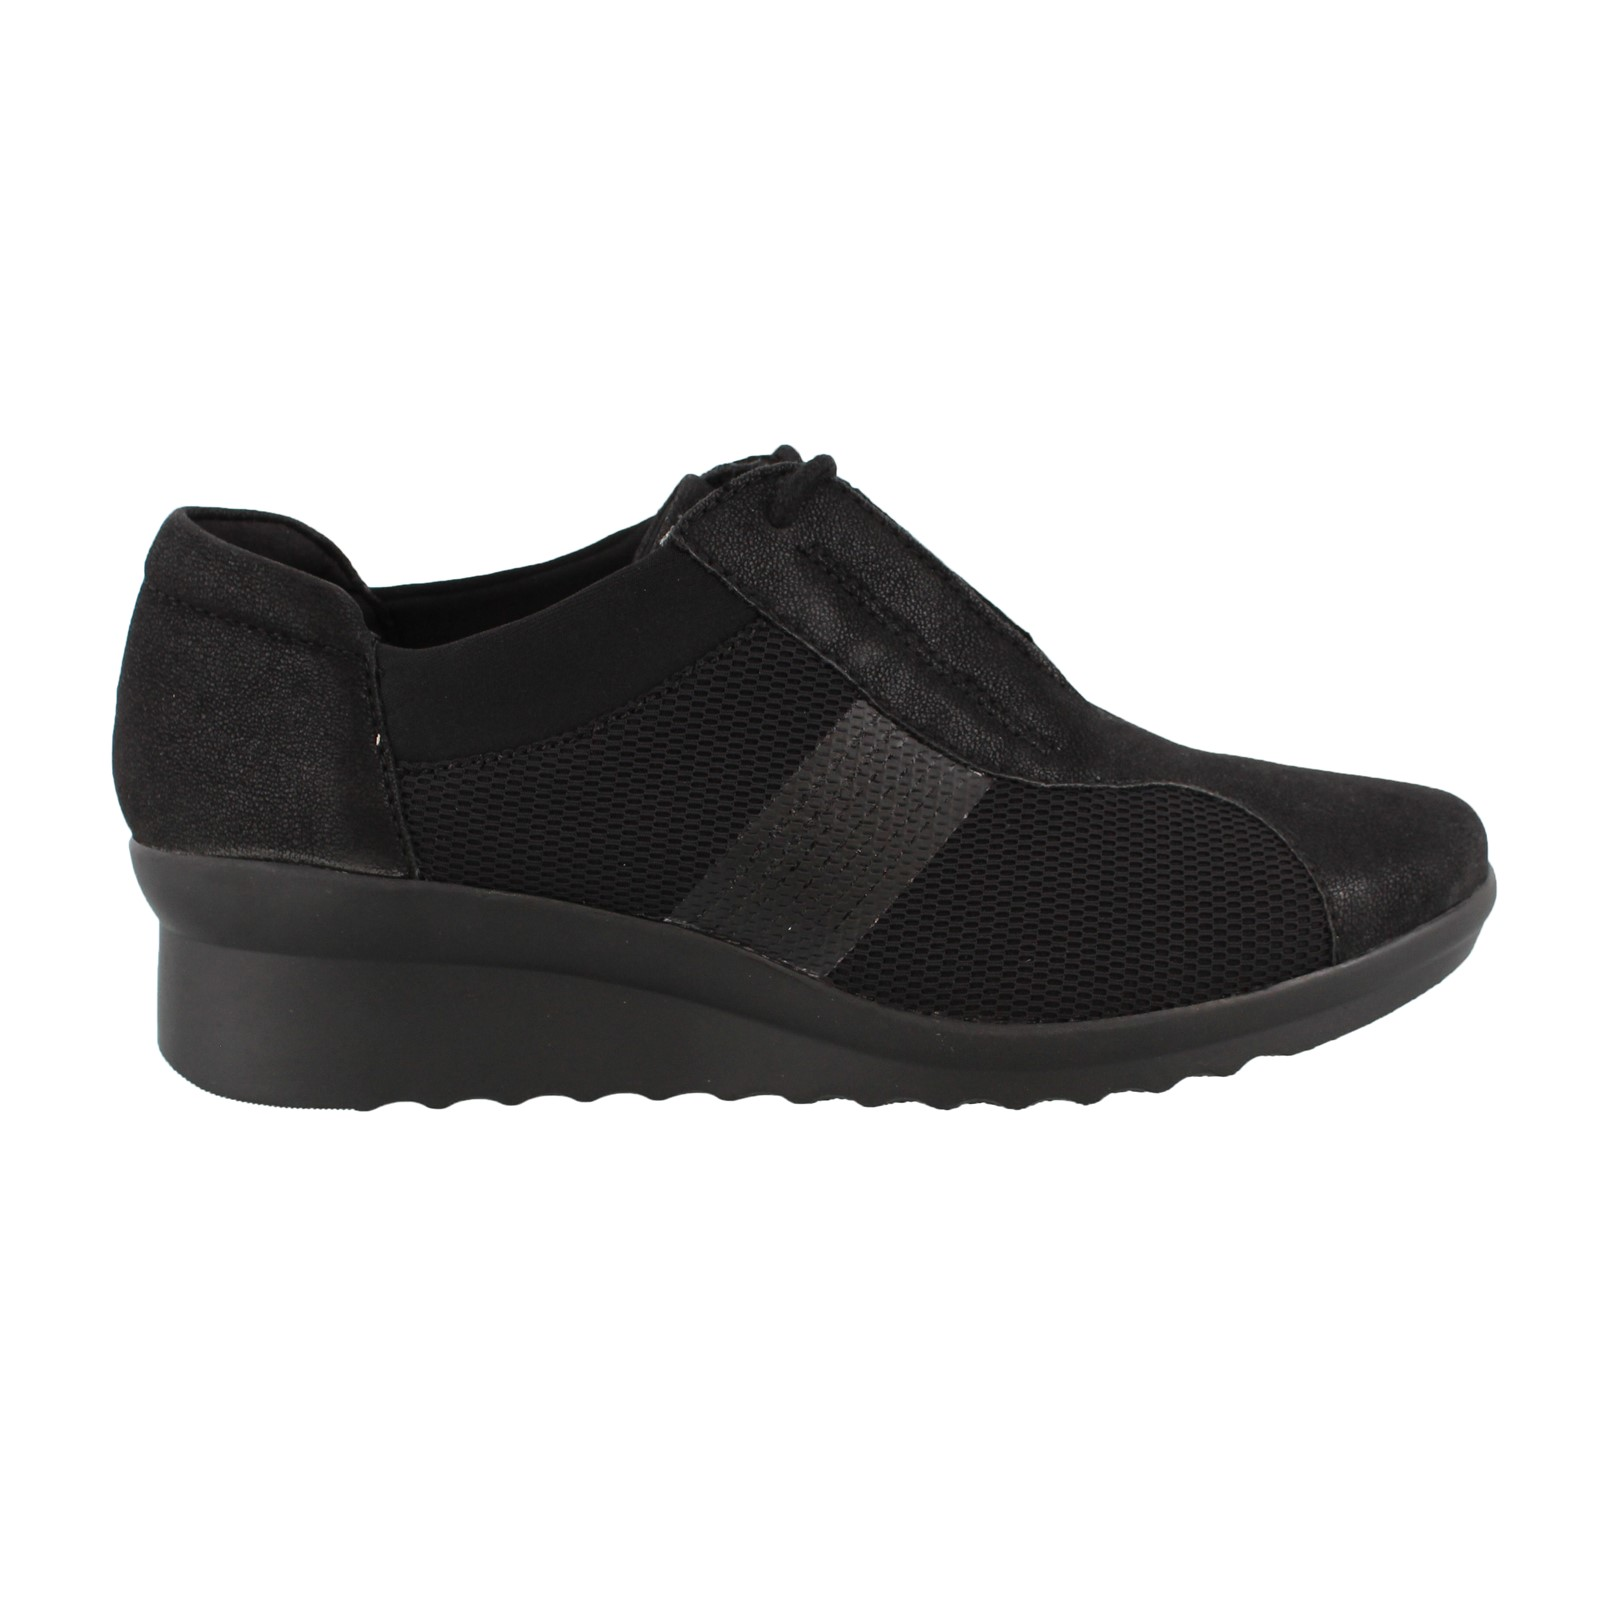 Women's Clarks, Caddell Fly Slip on Shoes